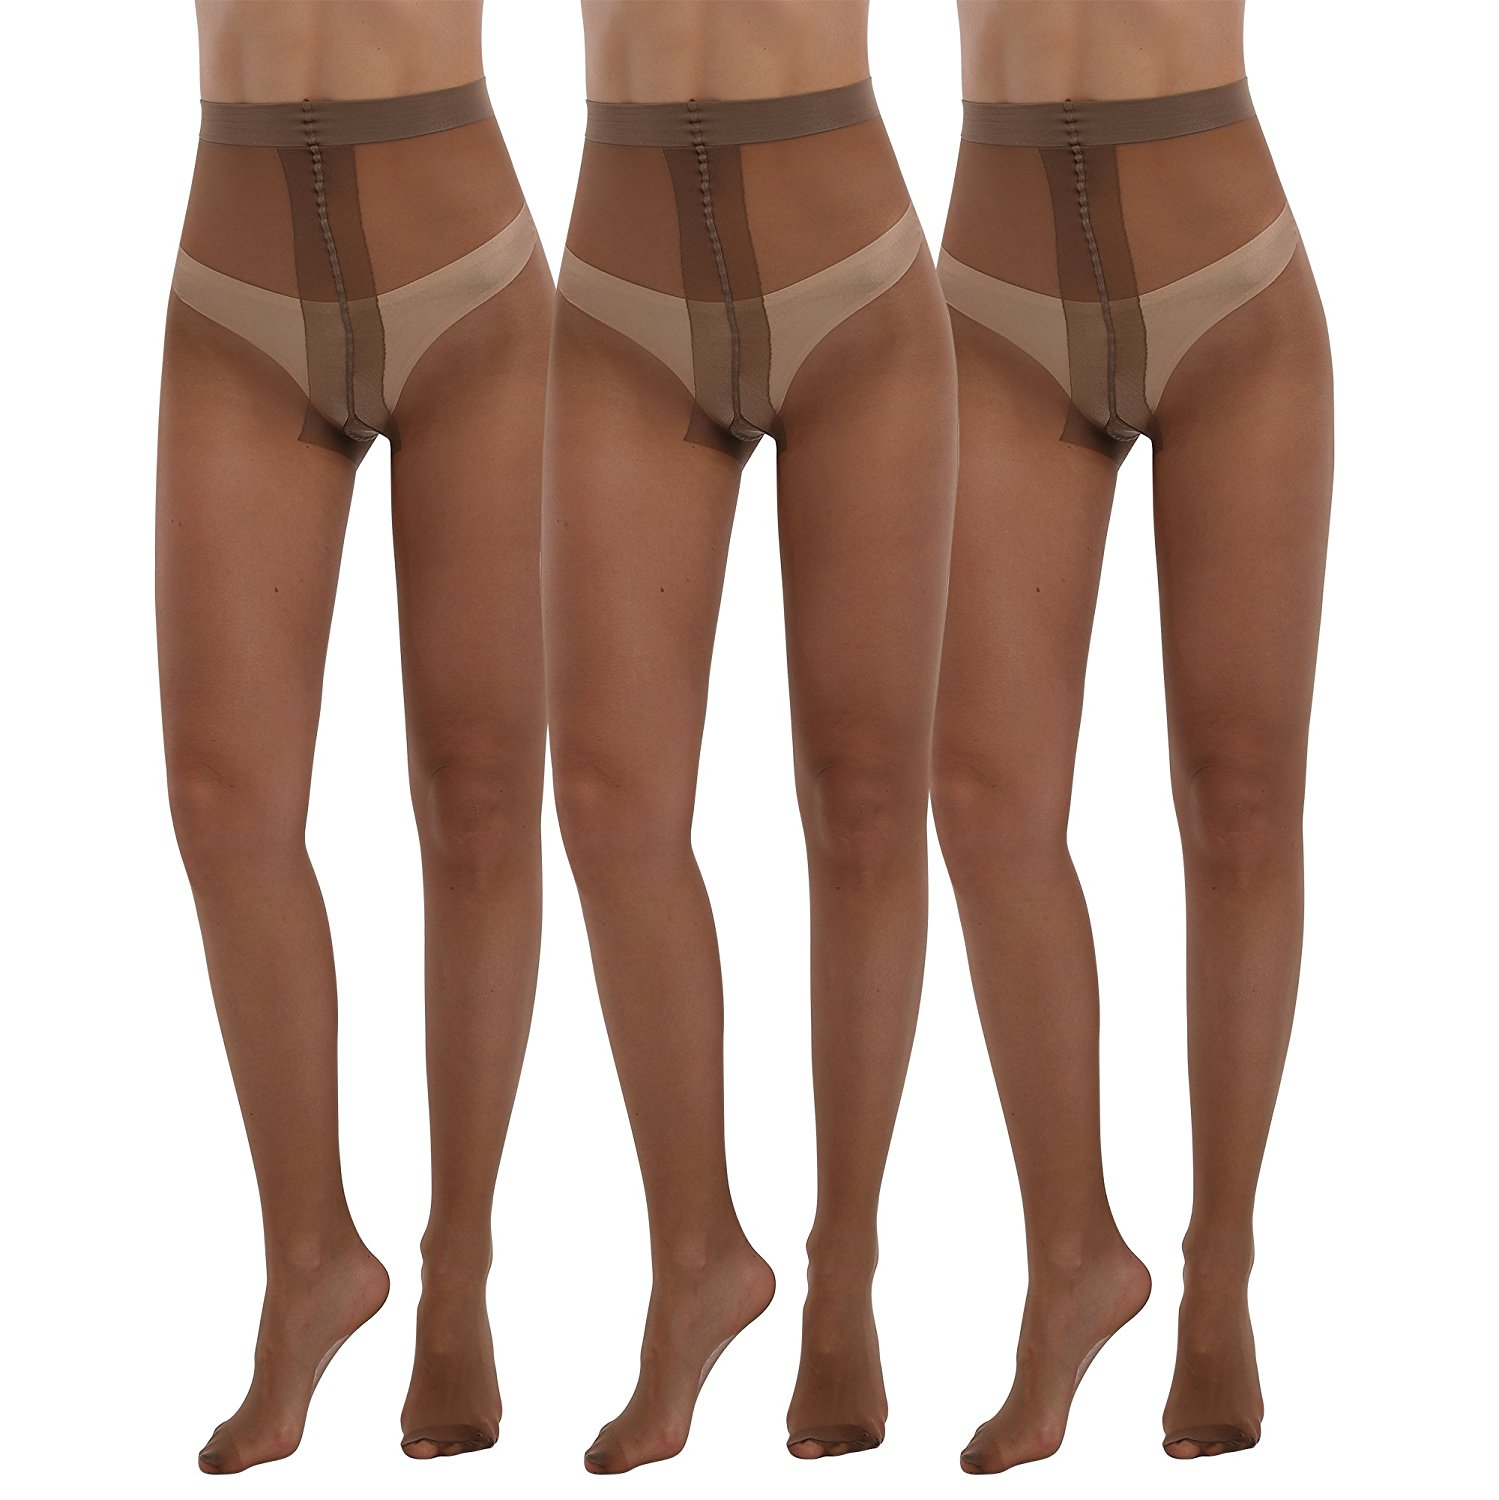 87fd29d72c7 Get Quotations · Women s Plus Size Tights 3packs 20 Denier Sheer to Waist T  Crotch Run Risistance Nylons